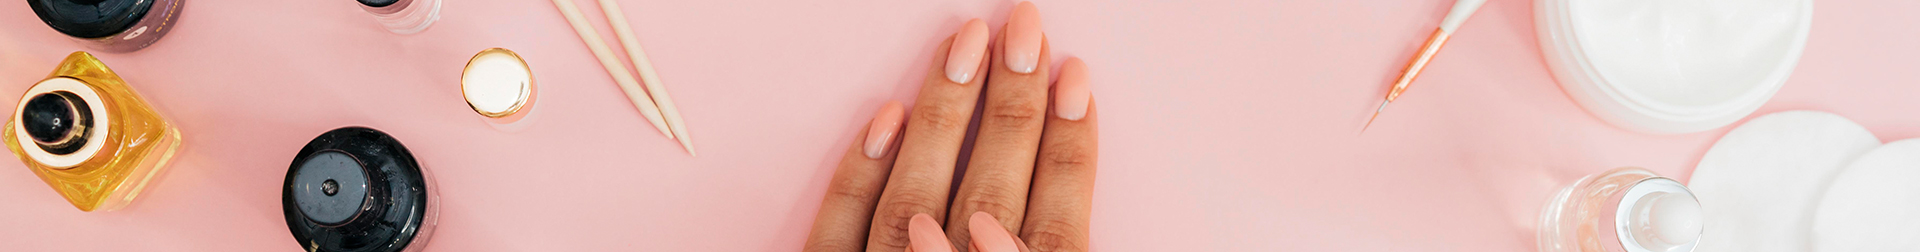 Nail Makeup Products | Nail Care: Buy Nail Care Products | AromaCraze